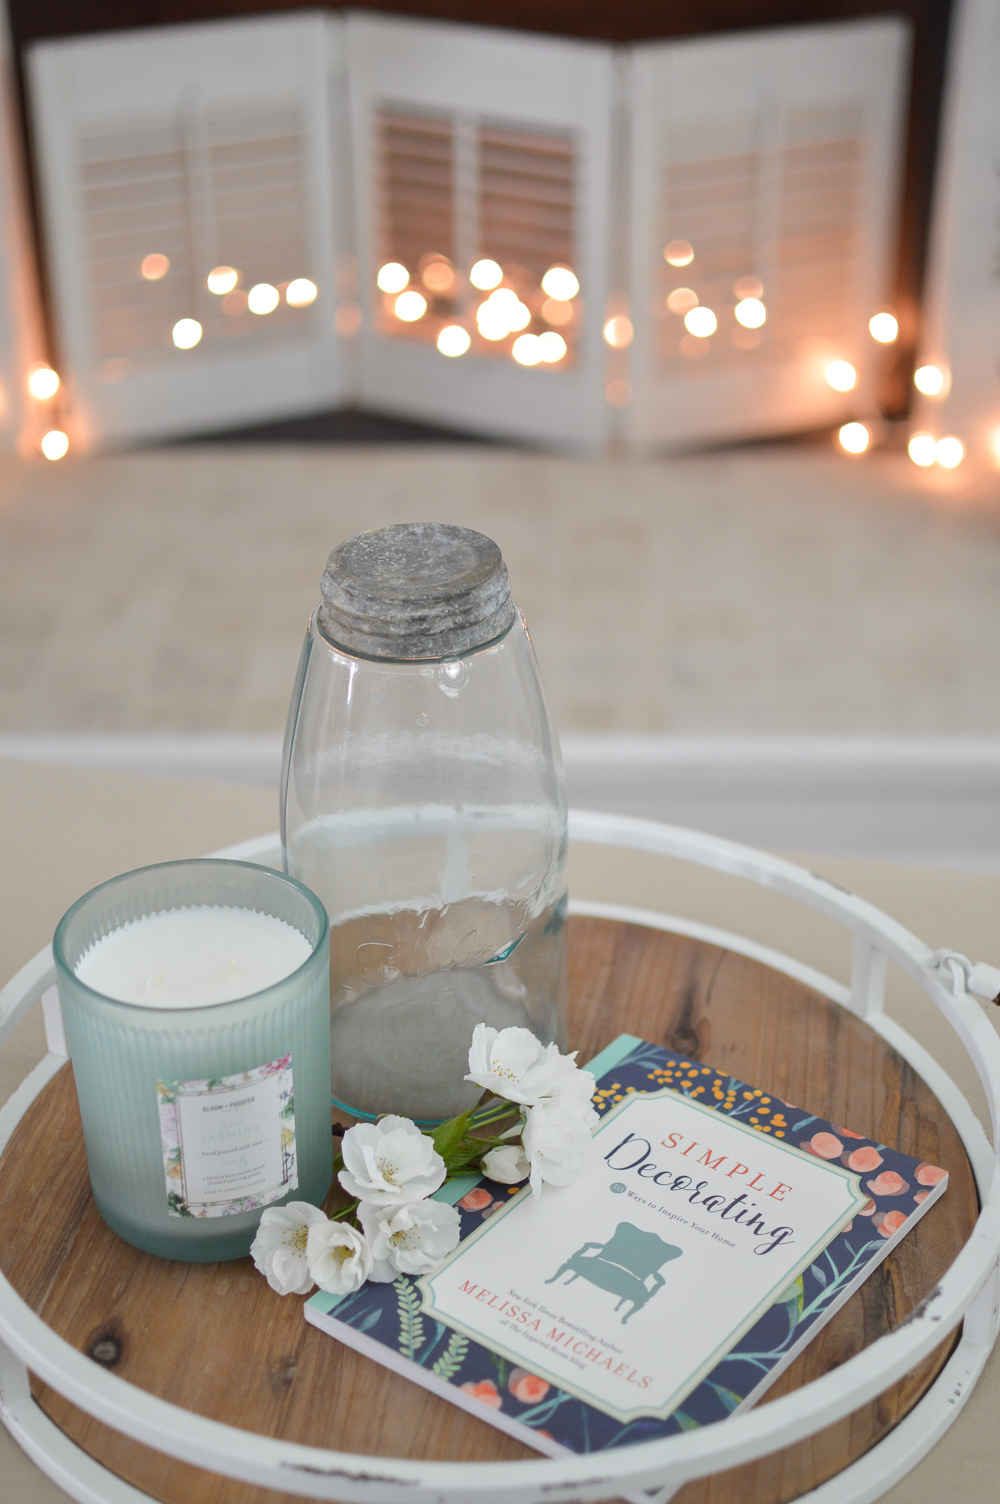 Simple Decorating: 50 Ways to Inspire Your Home (Inspired Ideas) by Melissa Michaels